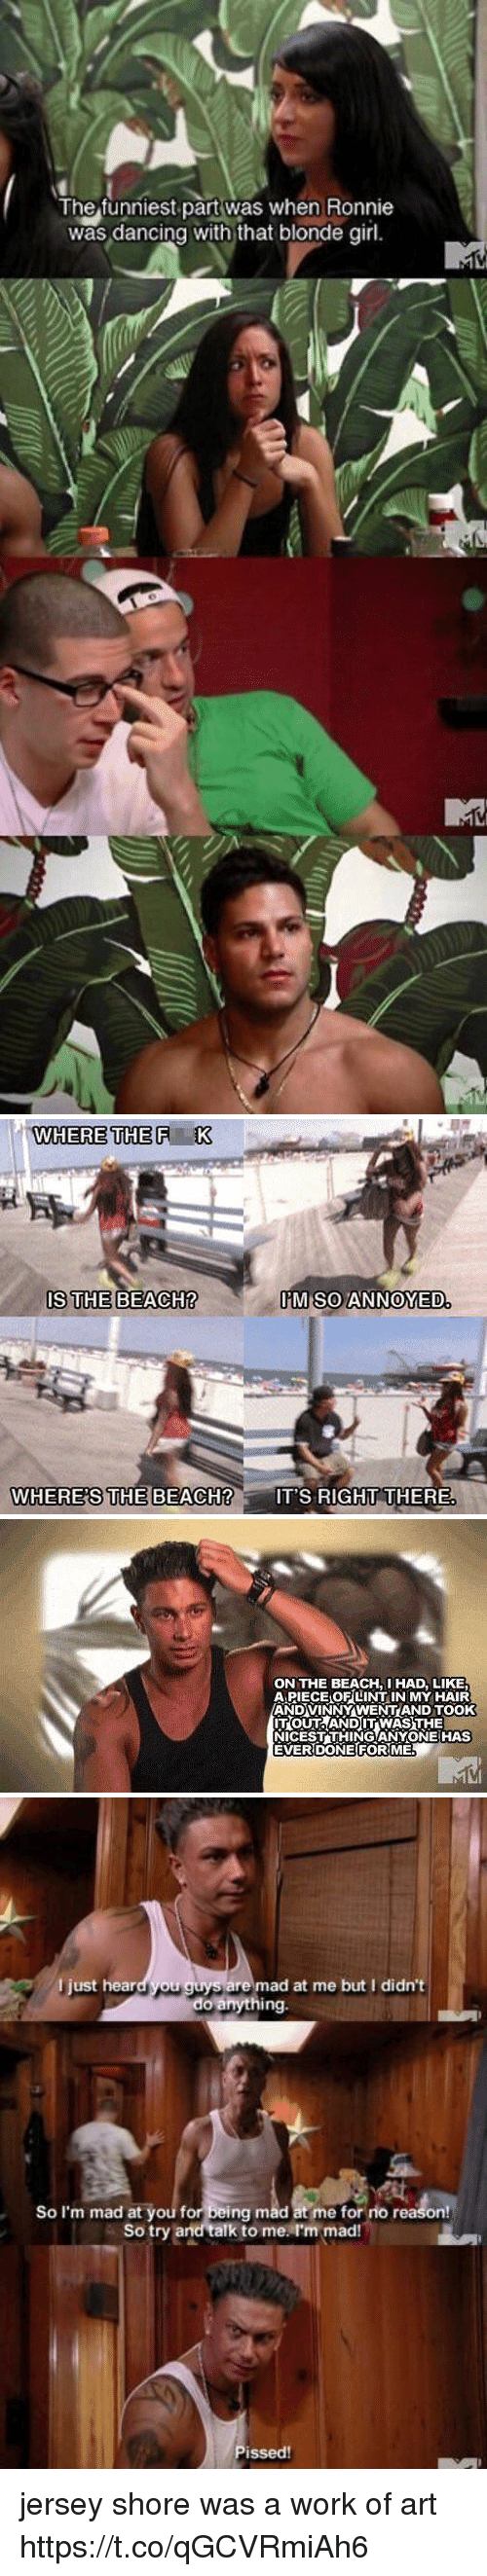 blonde girl: The funniest part was when Ronnie  was dancing with that blonde girl   WHERE THE F K  IS THE BEACH?  M SOANNOYED  WHERE'S  CH?IT'S RIGHT THERE   ON THE BEACH, HAD, LIKE  APIECEO팃LINT IN MY HAIR  ANDVINNÝ WENTAND TOOK  ITOUTAANDITWAS THE  NICESTTHINGANYONE HAS  EVERDONE FORIME   l just heard you guys are mad at me but I didn't  do anything.  So I'm mad at you for being mad at me for rio reason!  So try and talk to me I'm mad!  issed! jersey shore was a work of art https://t.co/qGCVRmiAh6